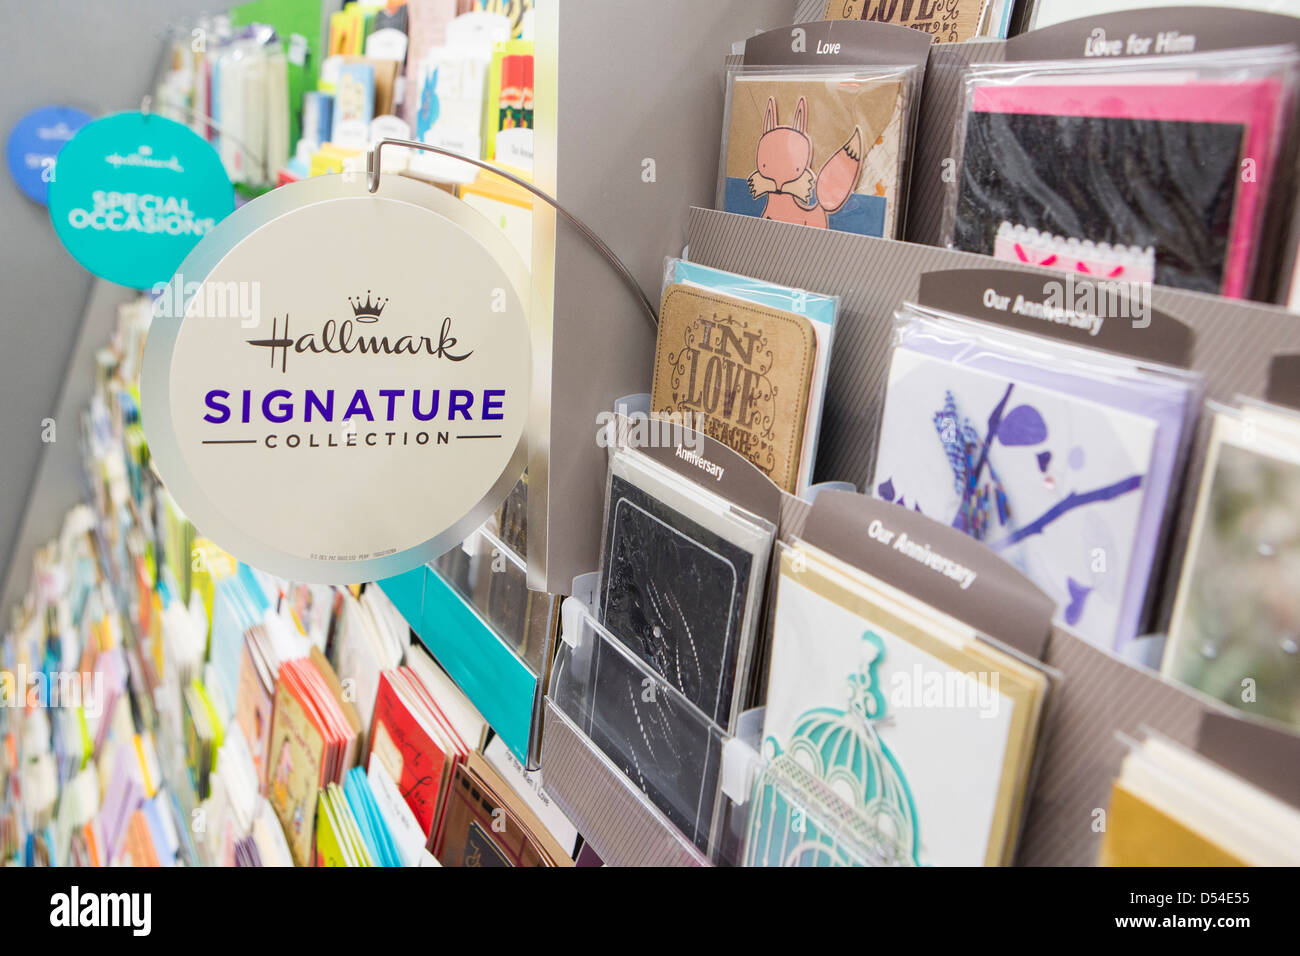 Hallmark greeting cards on display at a walgreens flagship store hallmark greeting cards on display at a walgreens flagship store m4hsunfo